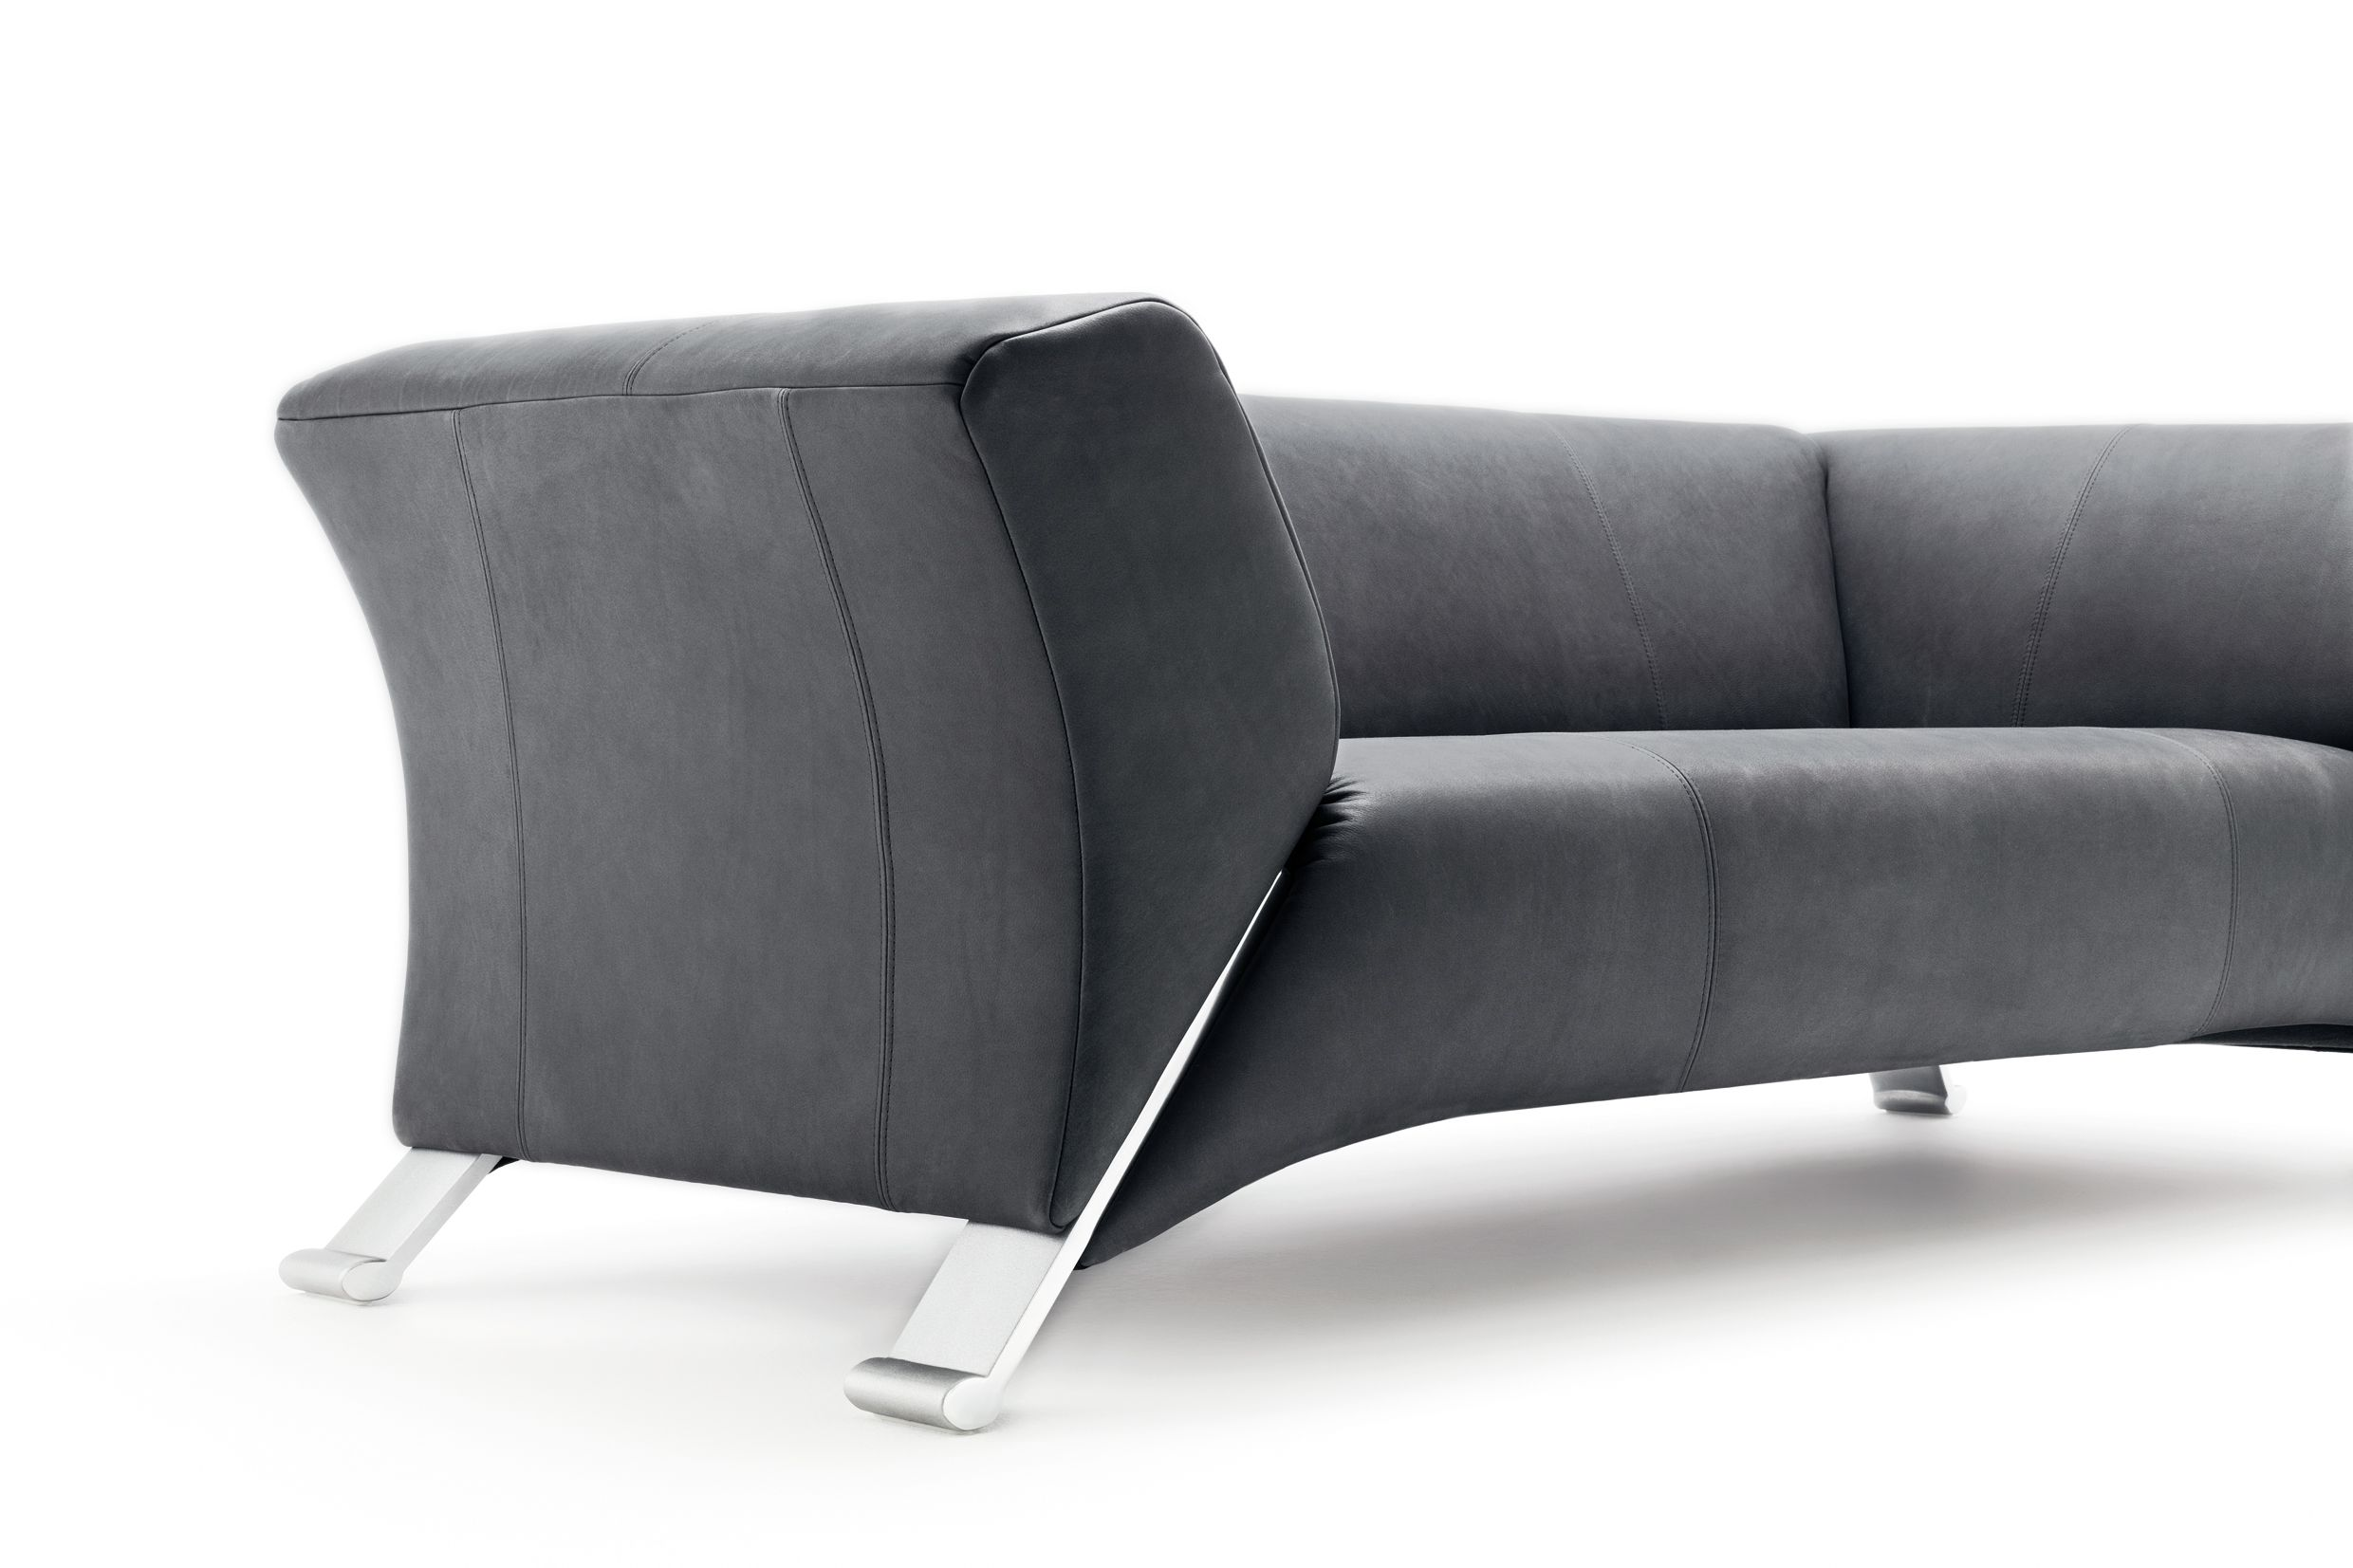 Rolf benz 322 my favorite piece of furniture design pinterest Rolf benz 322 sofa